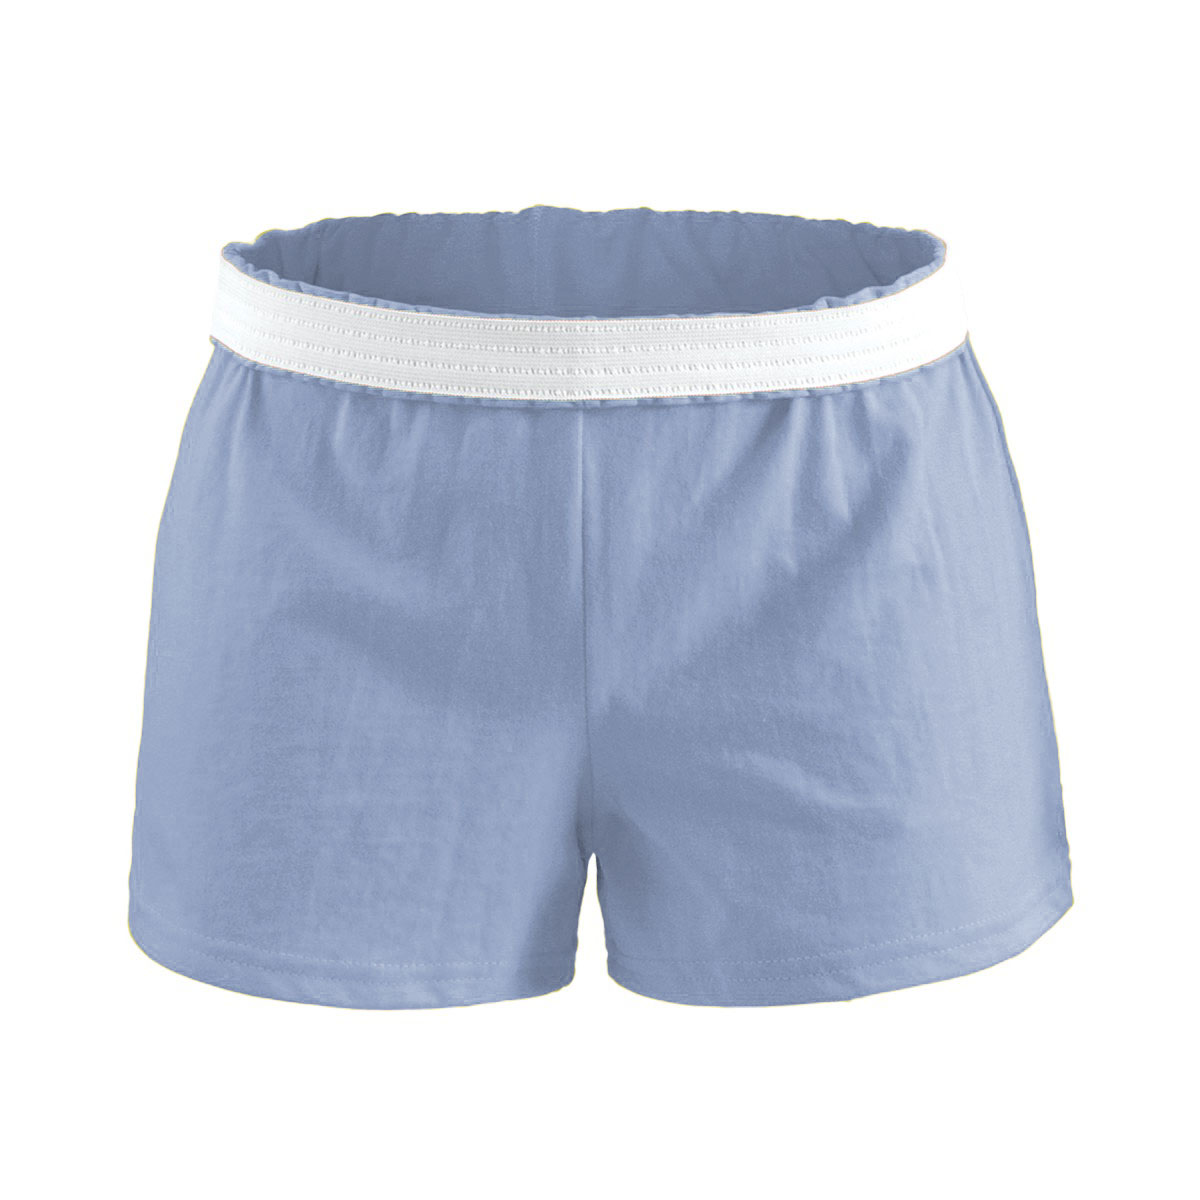 MJ Soffe Girls Authentic Short